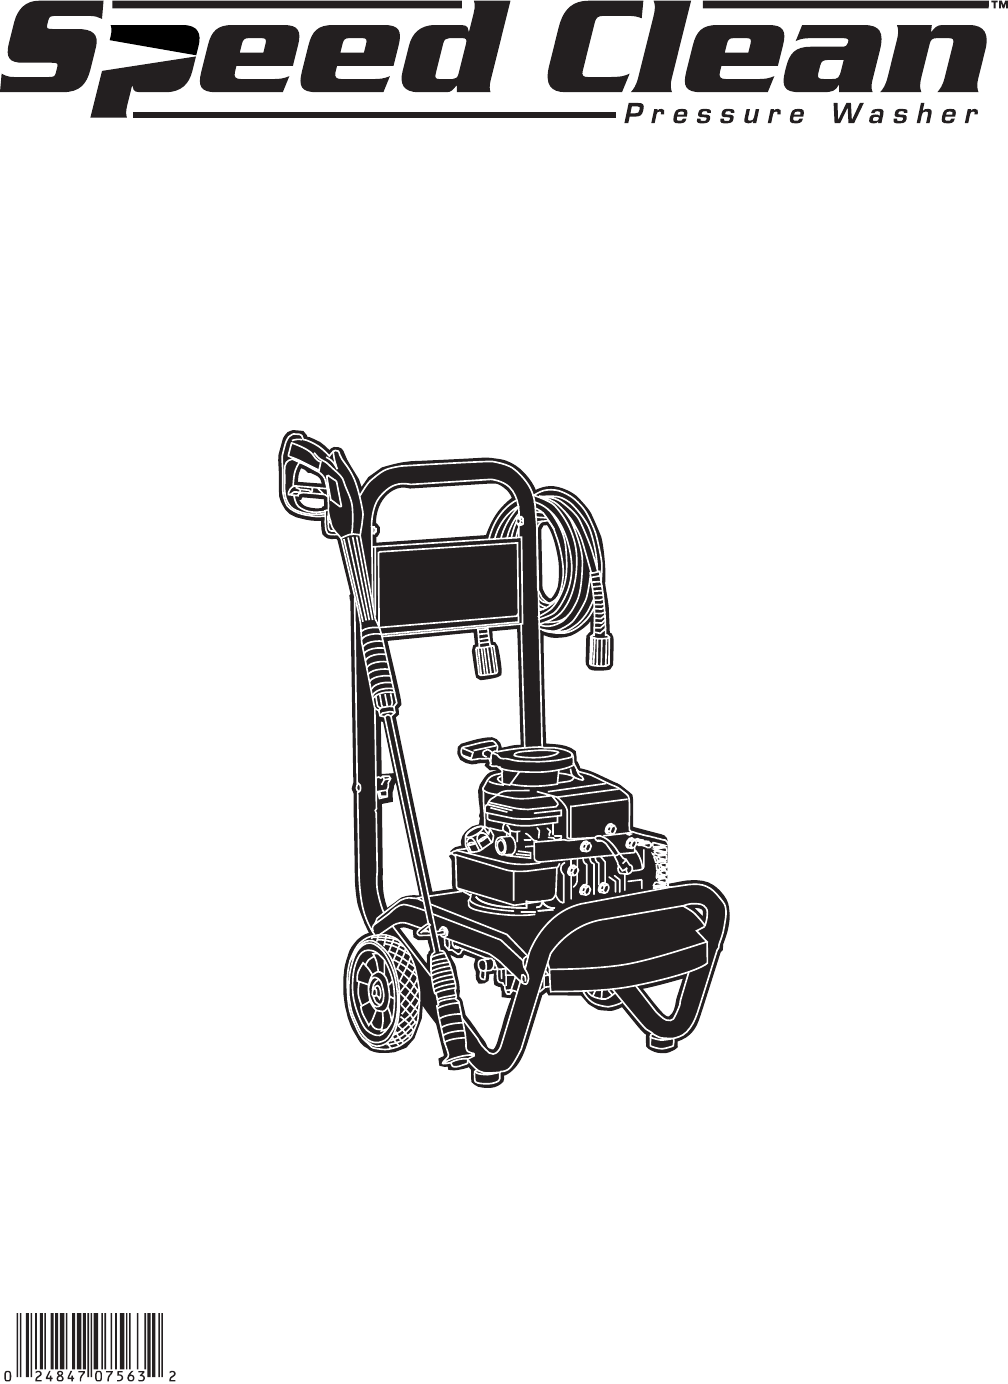 Briggs and stratton manual power washer alberto vzquez figueroa yiza power washer manual summary ebook pdf briggs stratton pressure washer manuals care guides literature parts shopnd great deals on ebay for briggs fandeluxe Image collections